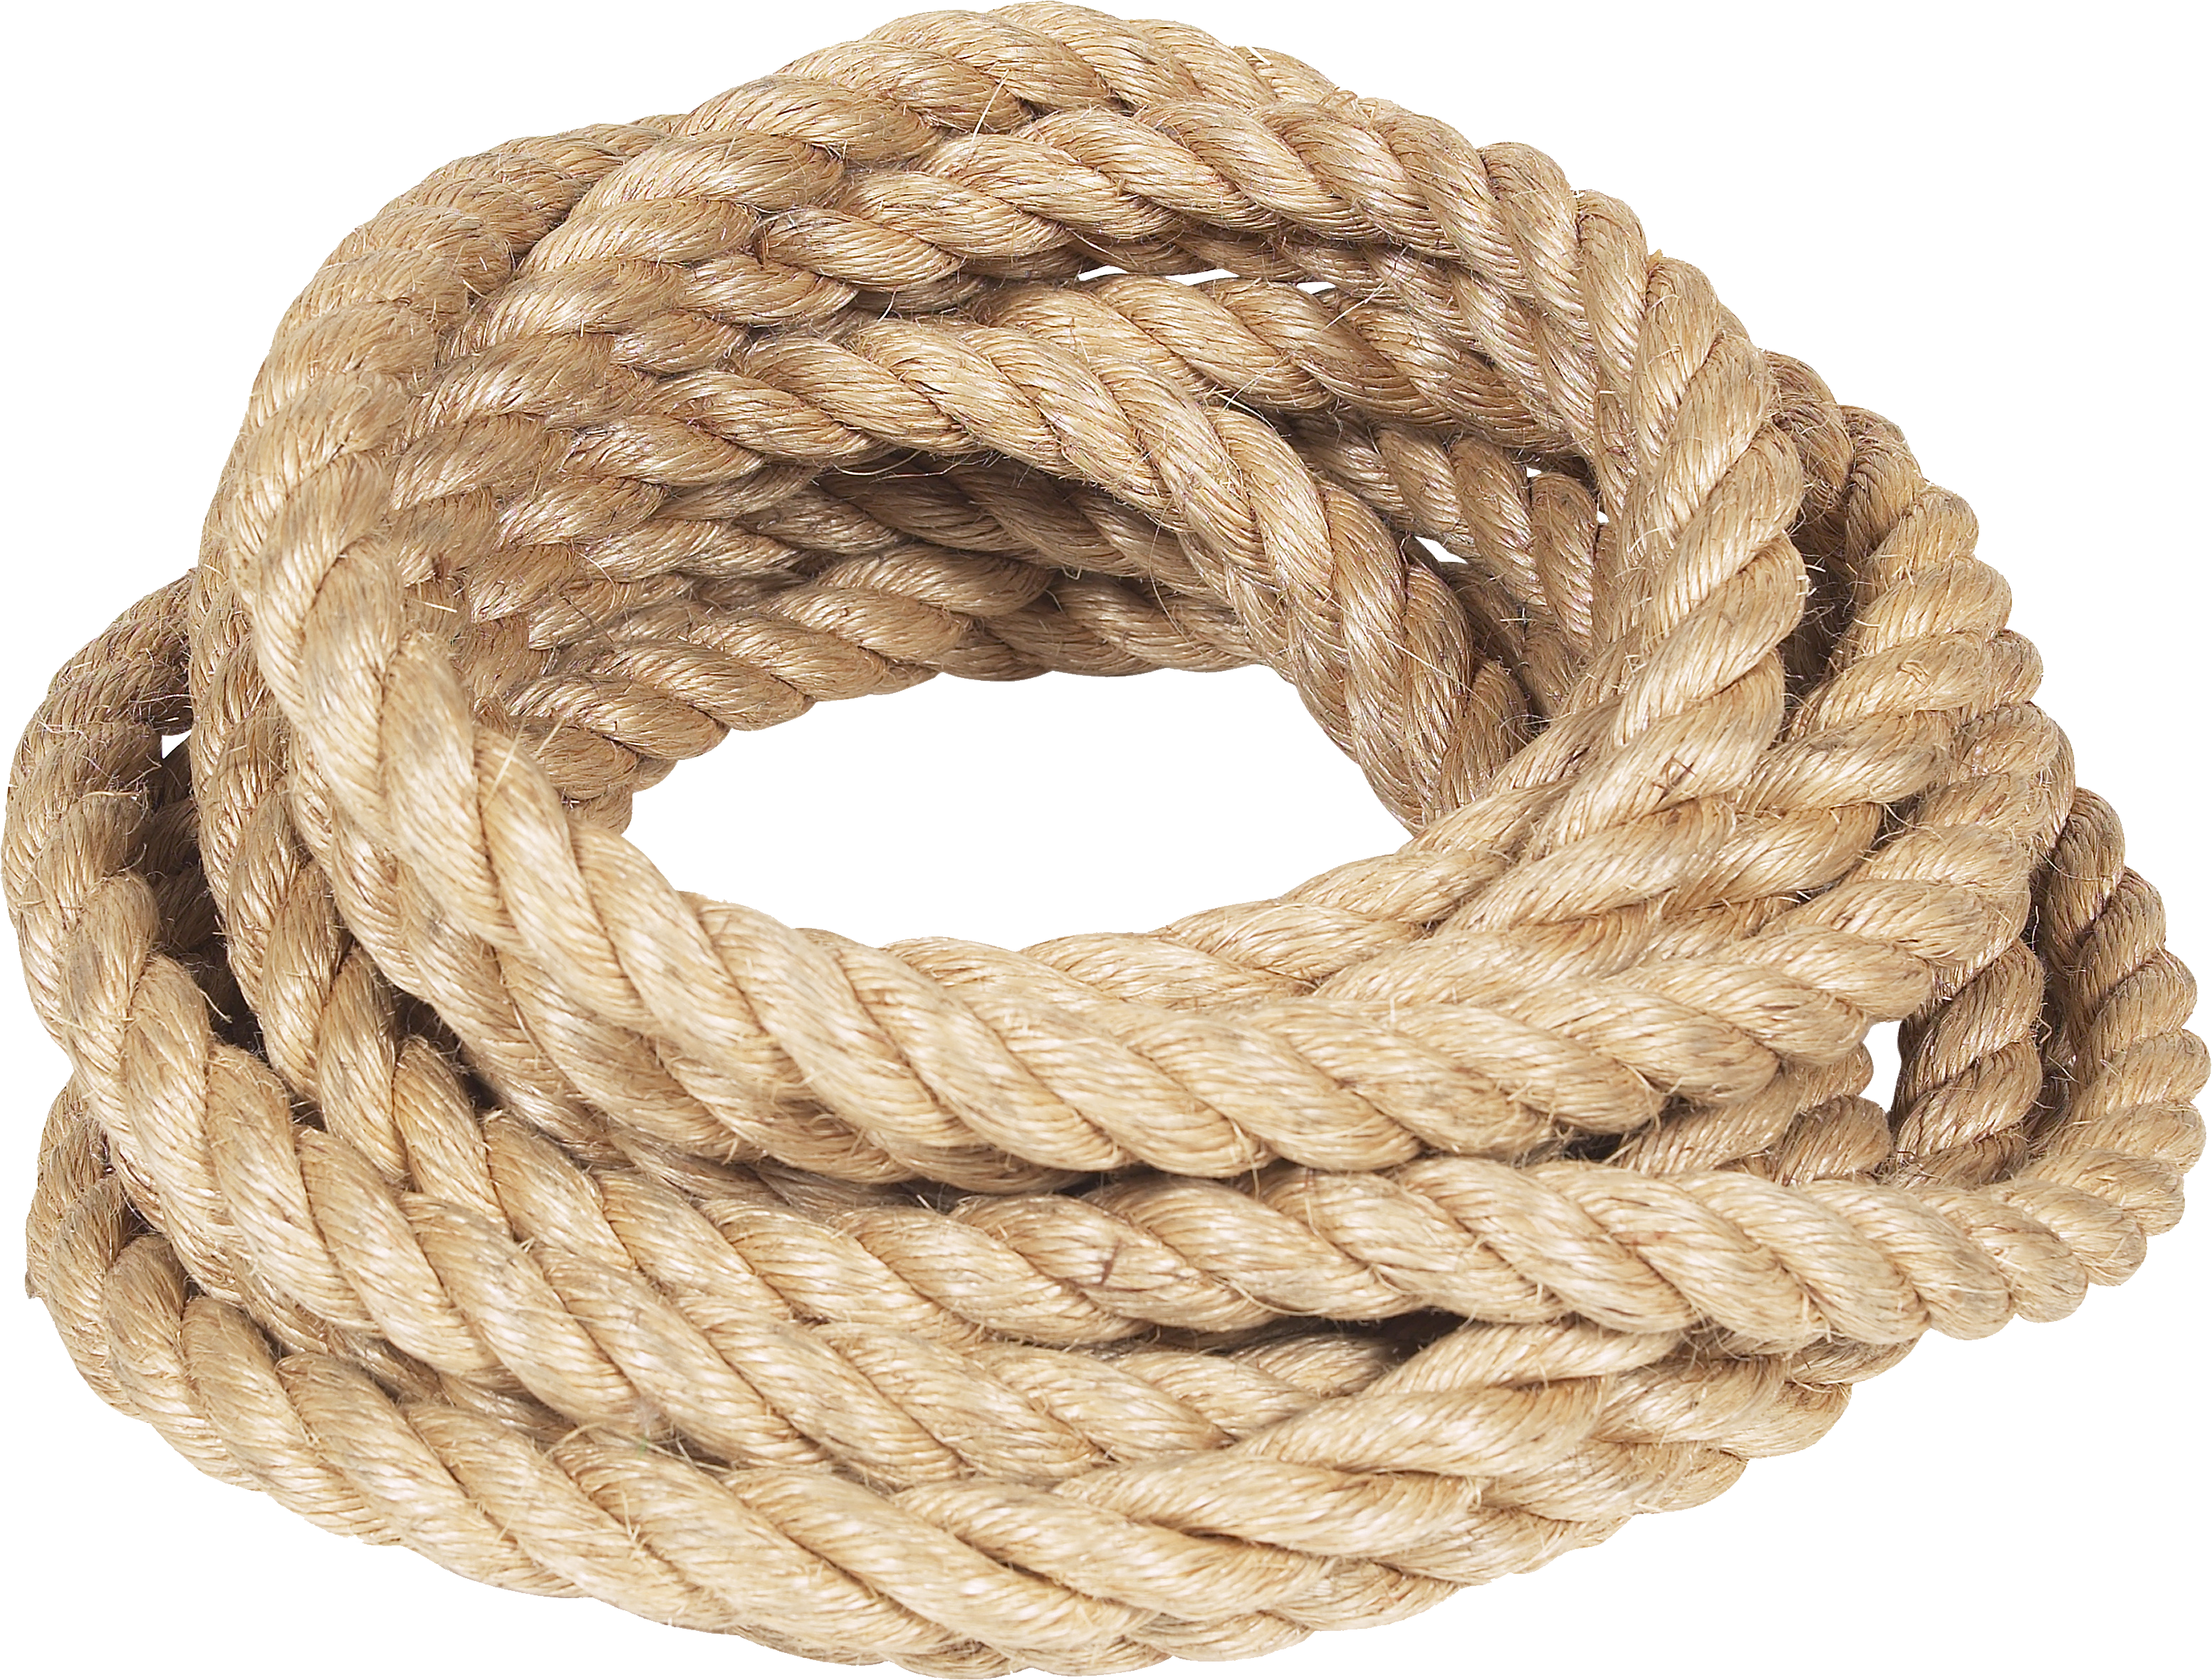 Rope clipart png clip transparent download Rope PNG images free download clip transparent download